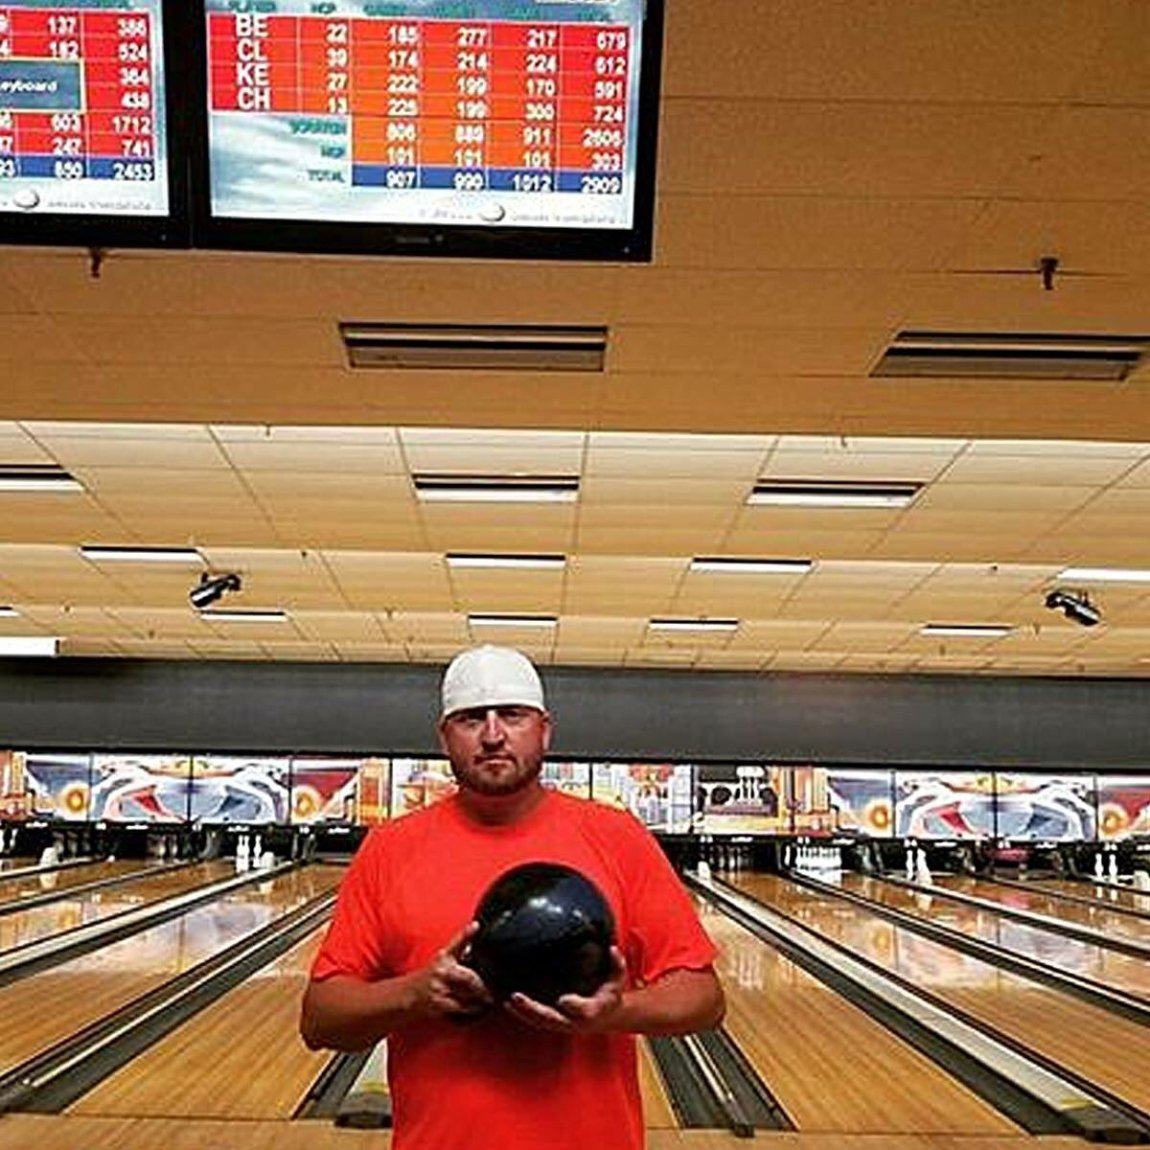 test Twitter Media - Congrats to Chris Holley who drilled his Mako less than 2 months ago and just fired his second 300 with it!  #TrackBowling #SmartBowling https://t.co/c28B1jl2W4